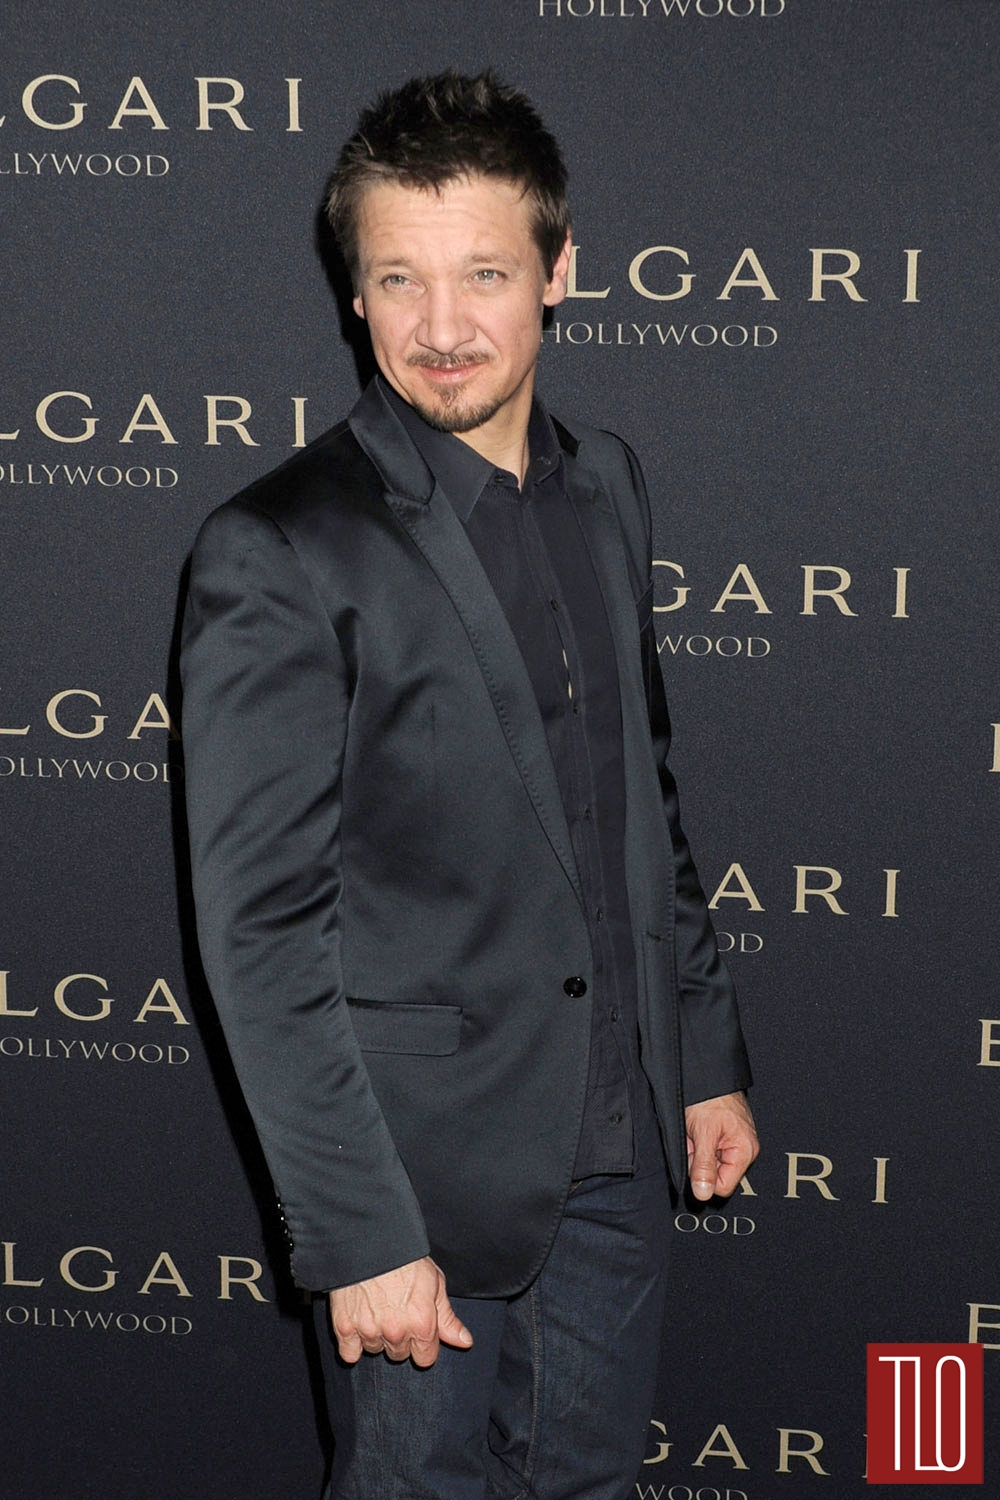 Jeremy-Renner-Decades-Glamour-Bulgari-Tom-Lorenzo-Site-TLO (1)